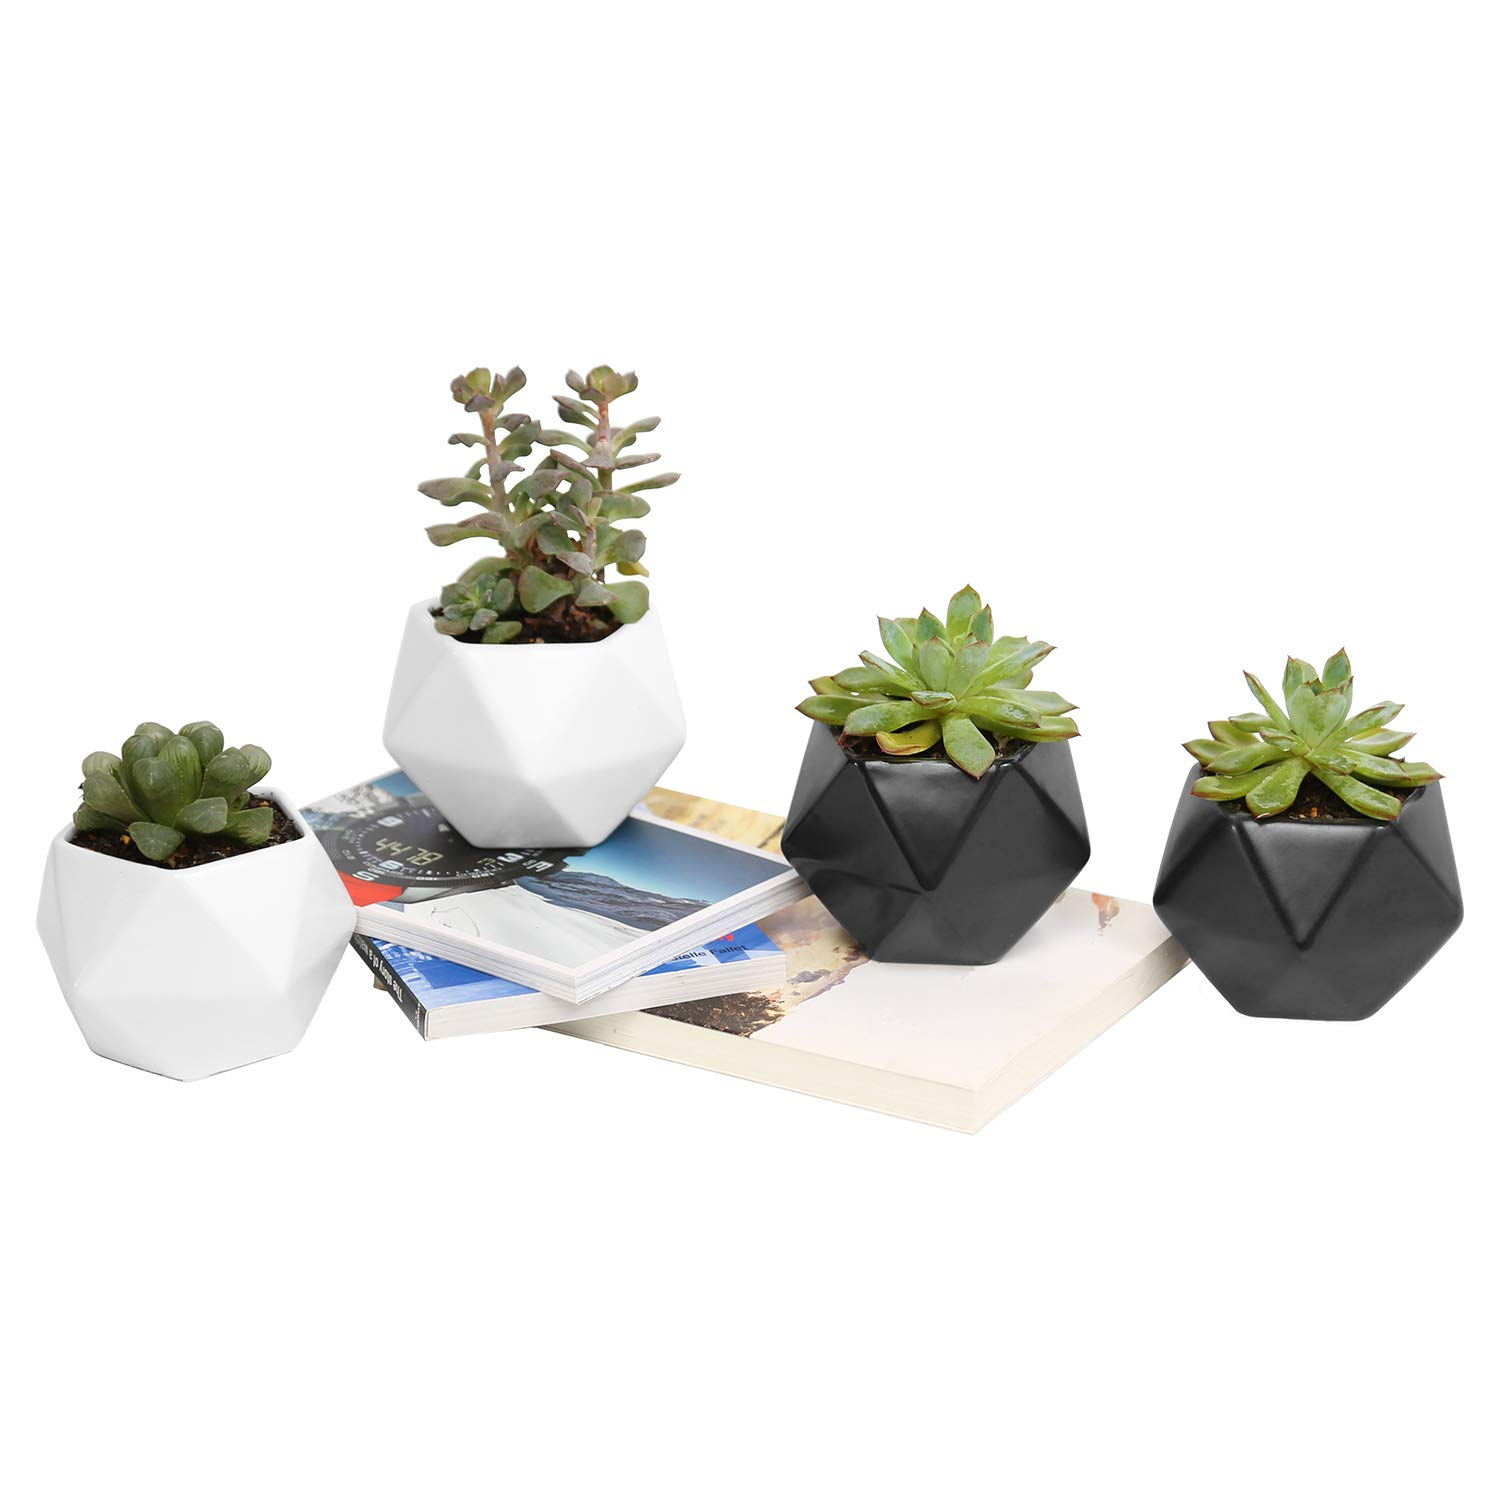 Plant Pot, Rosoli 4pcs Ceramics Indoor Planter Garden Pots for Succulents, African Violets, Cactus, Herbs - 3.5 Inch Flower Pots with Drainage Hole and Waterproof Tray (4, Black and White)